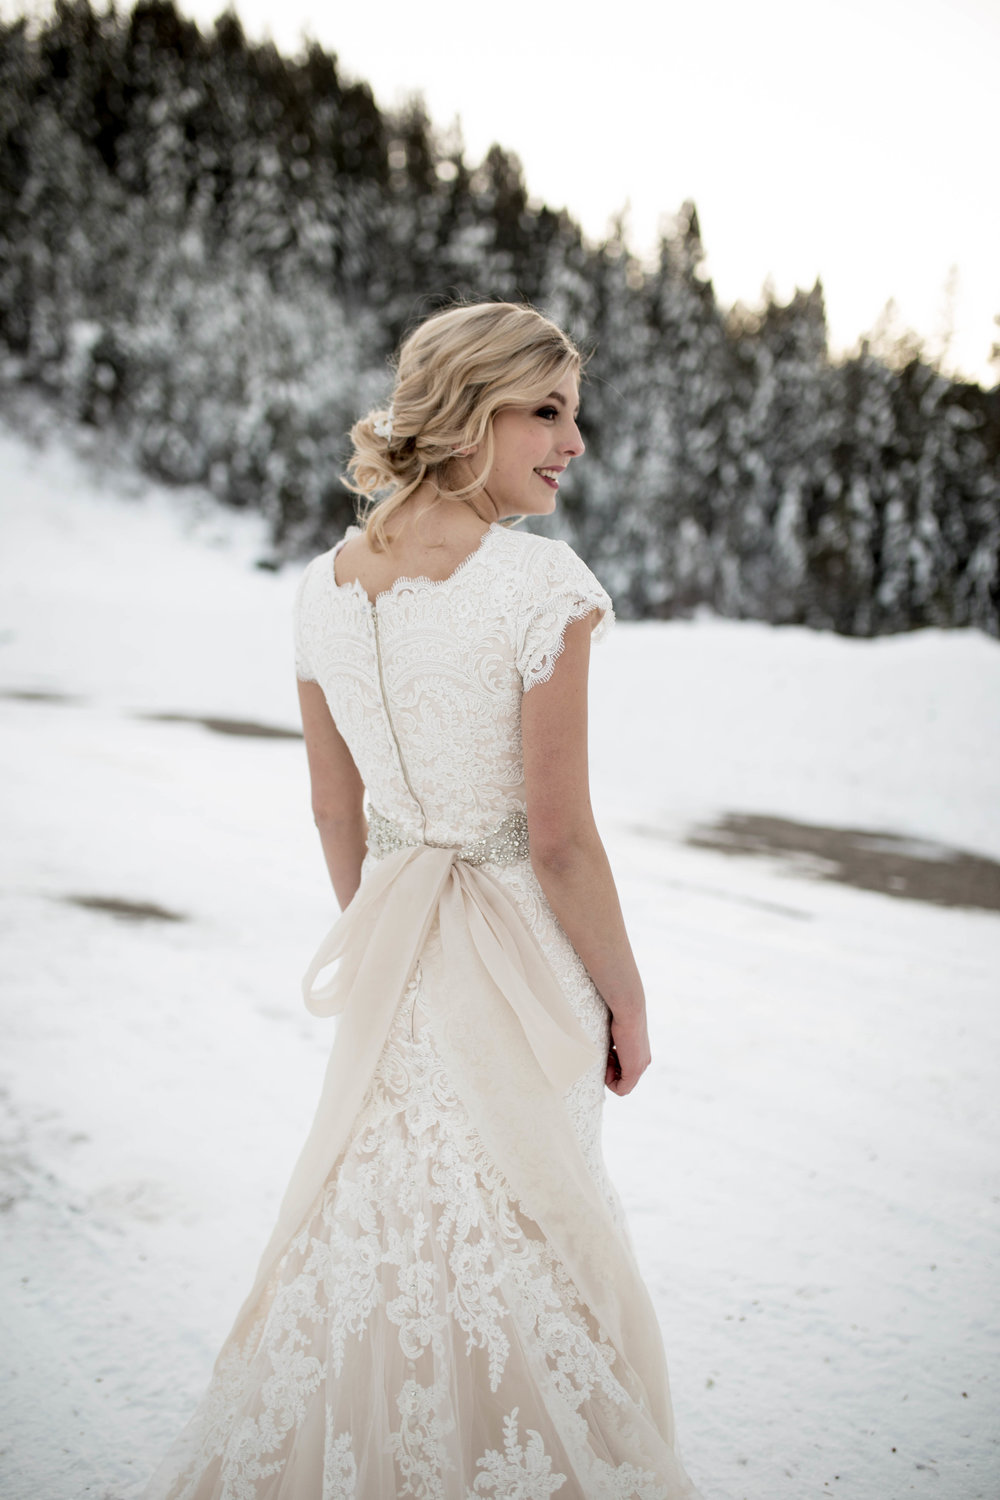 WinterWeddingBridalsTarghee (97 of 121).jpg